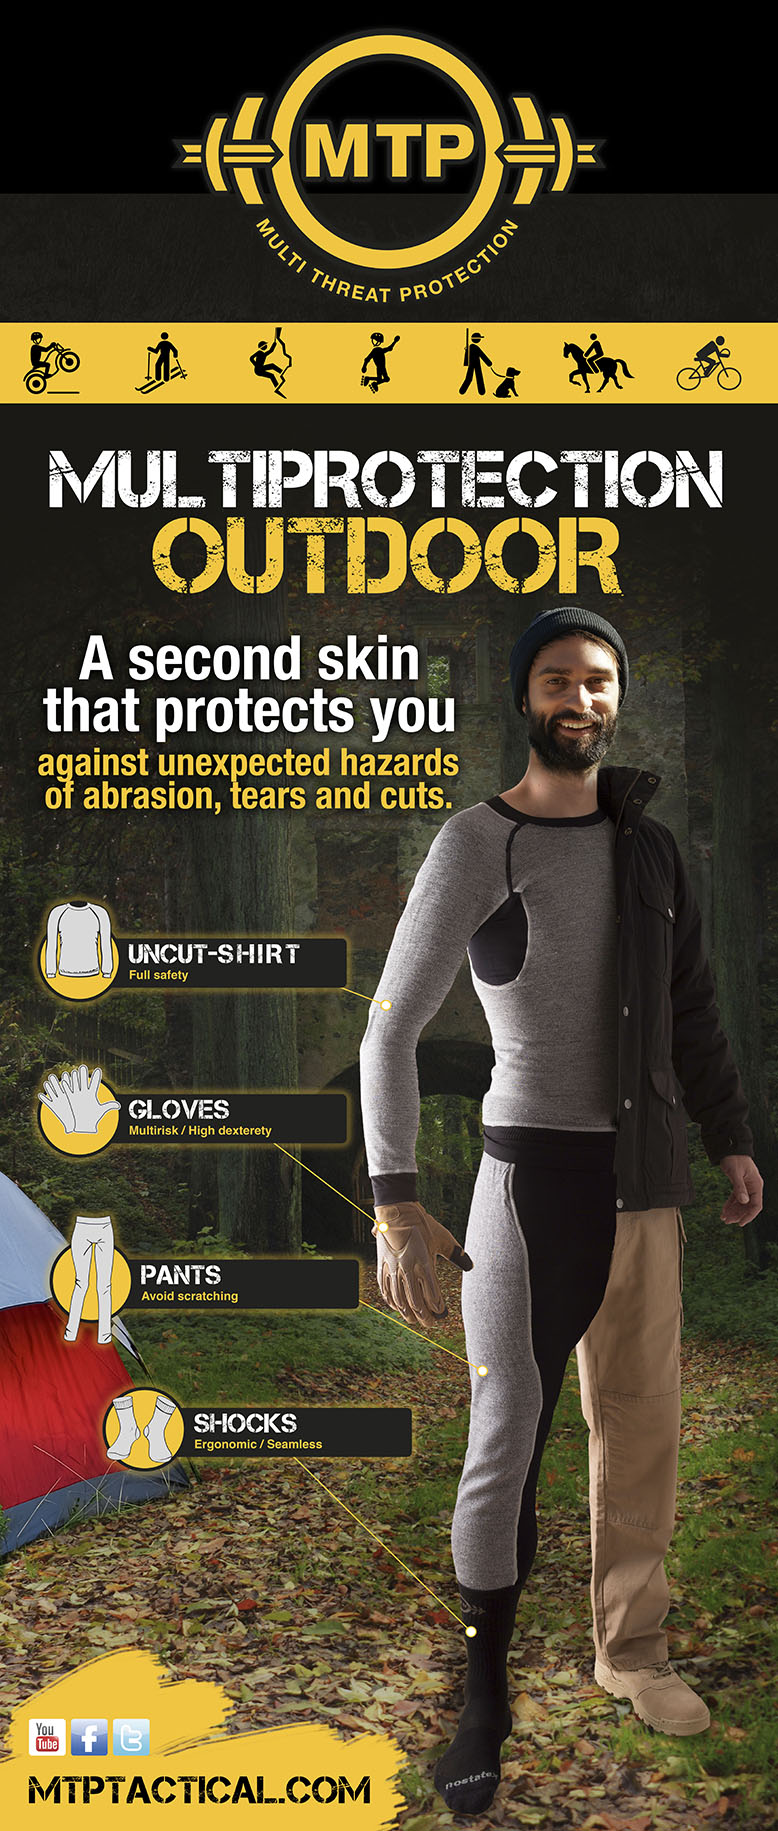 Multiprotection Outdoor